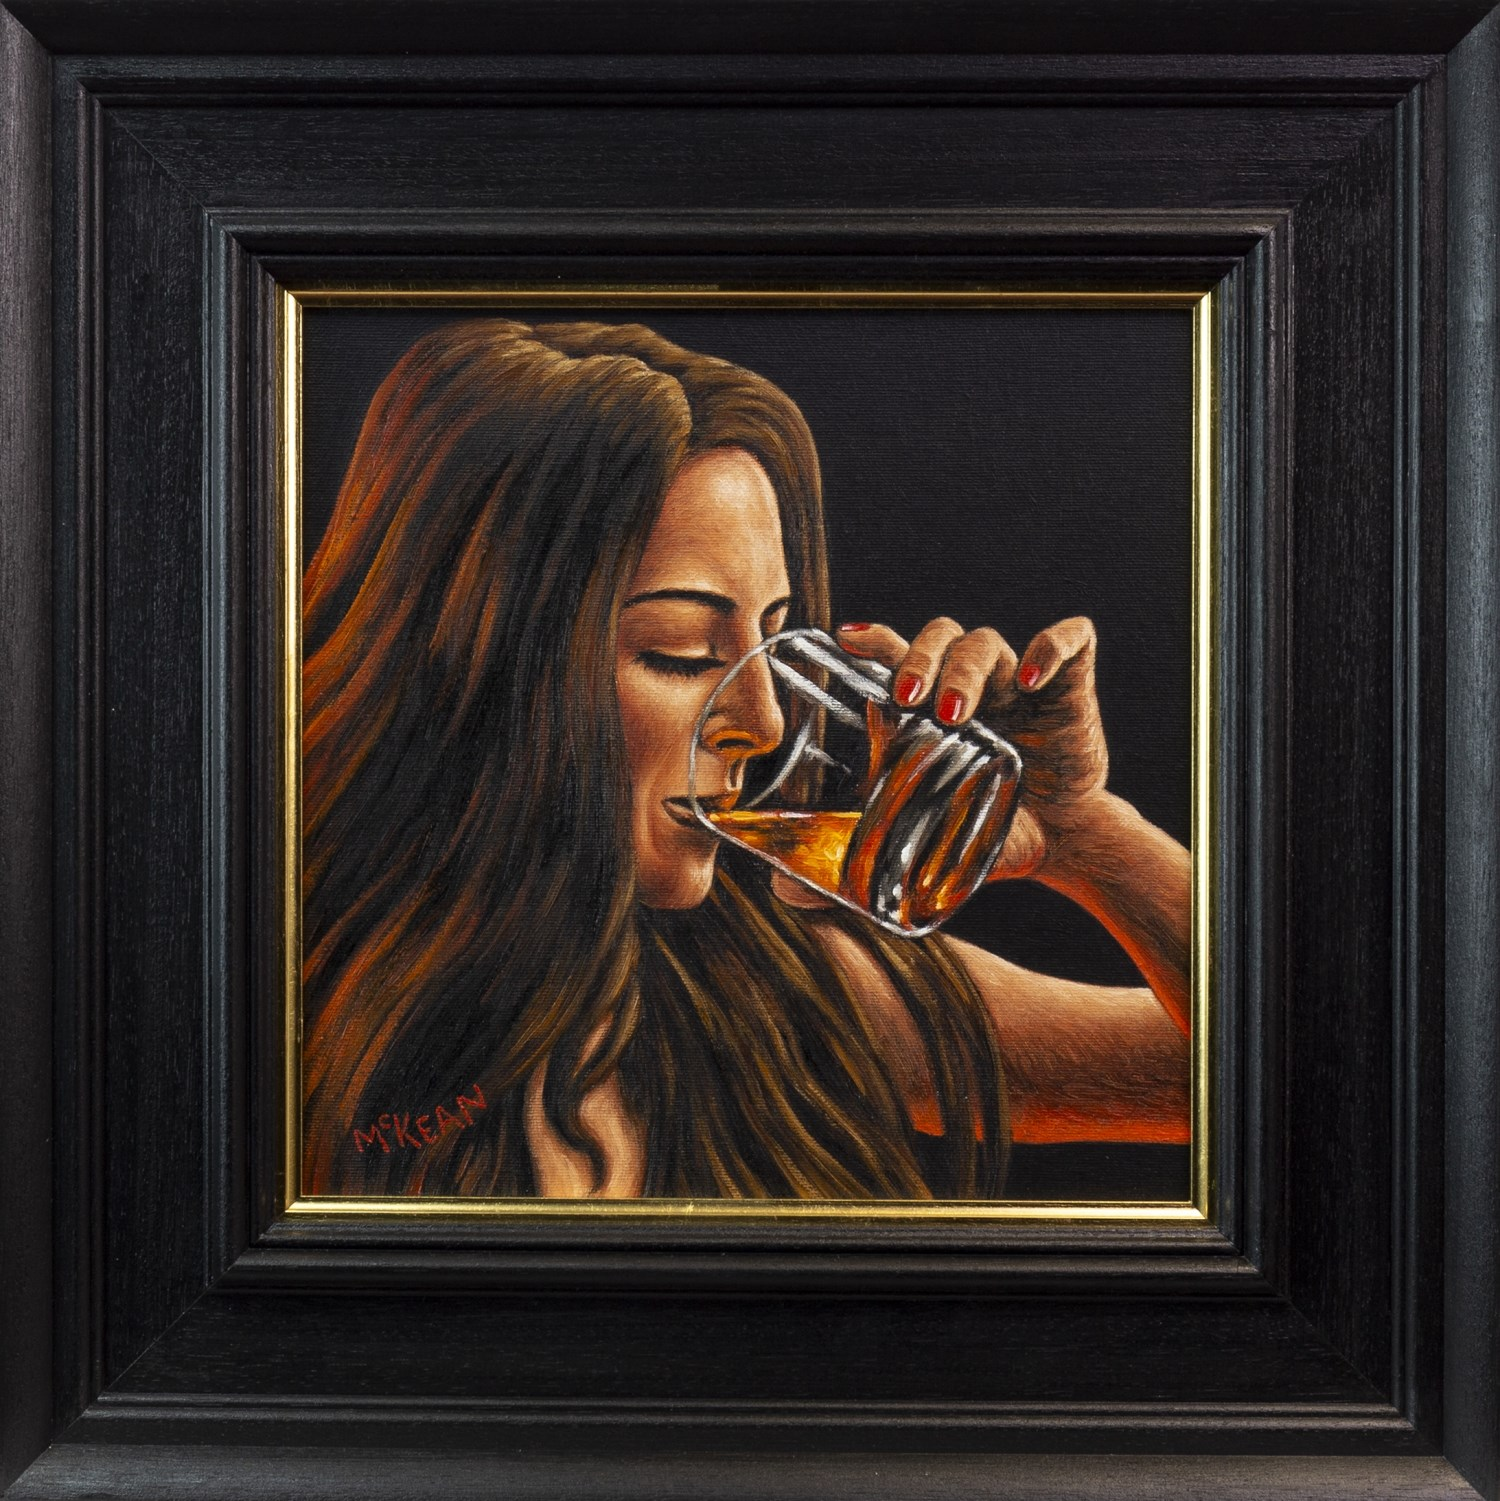 Lot 51 - THE GIRL WHO LOVED WHISKY, AN OIL ON CANVAS BY GRAHAM MCKEAN